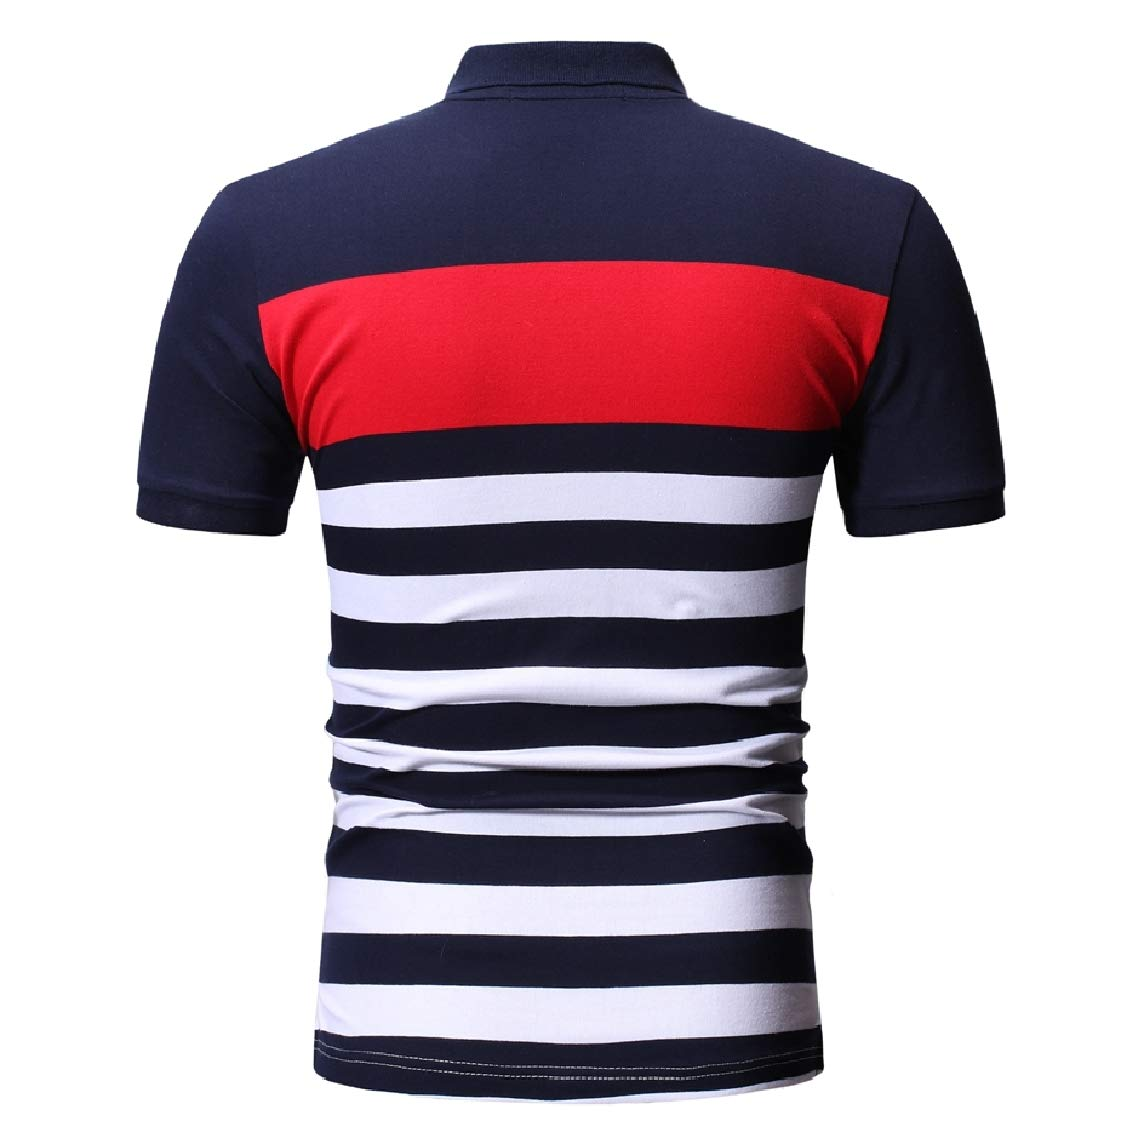 Mfasica Men Lapel Cozy Short-Sleeve Hit Color T-Shirts Polo Shirt